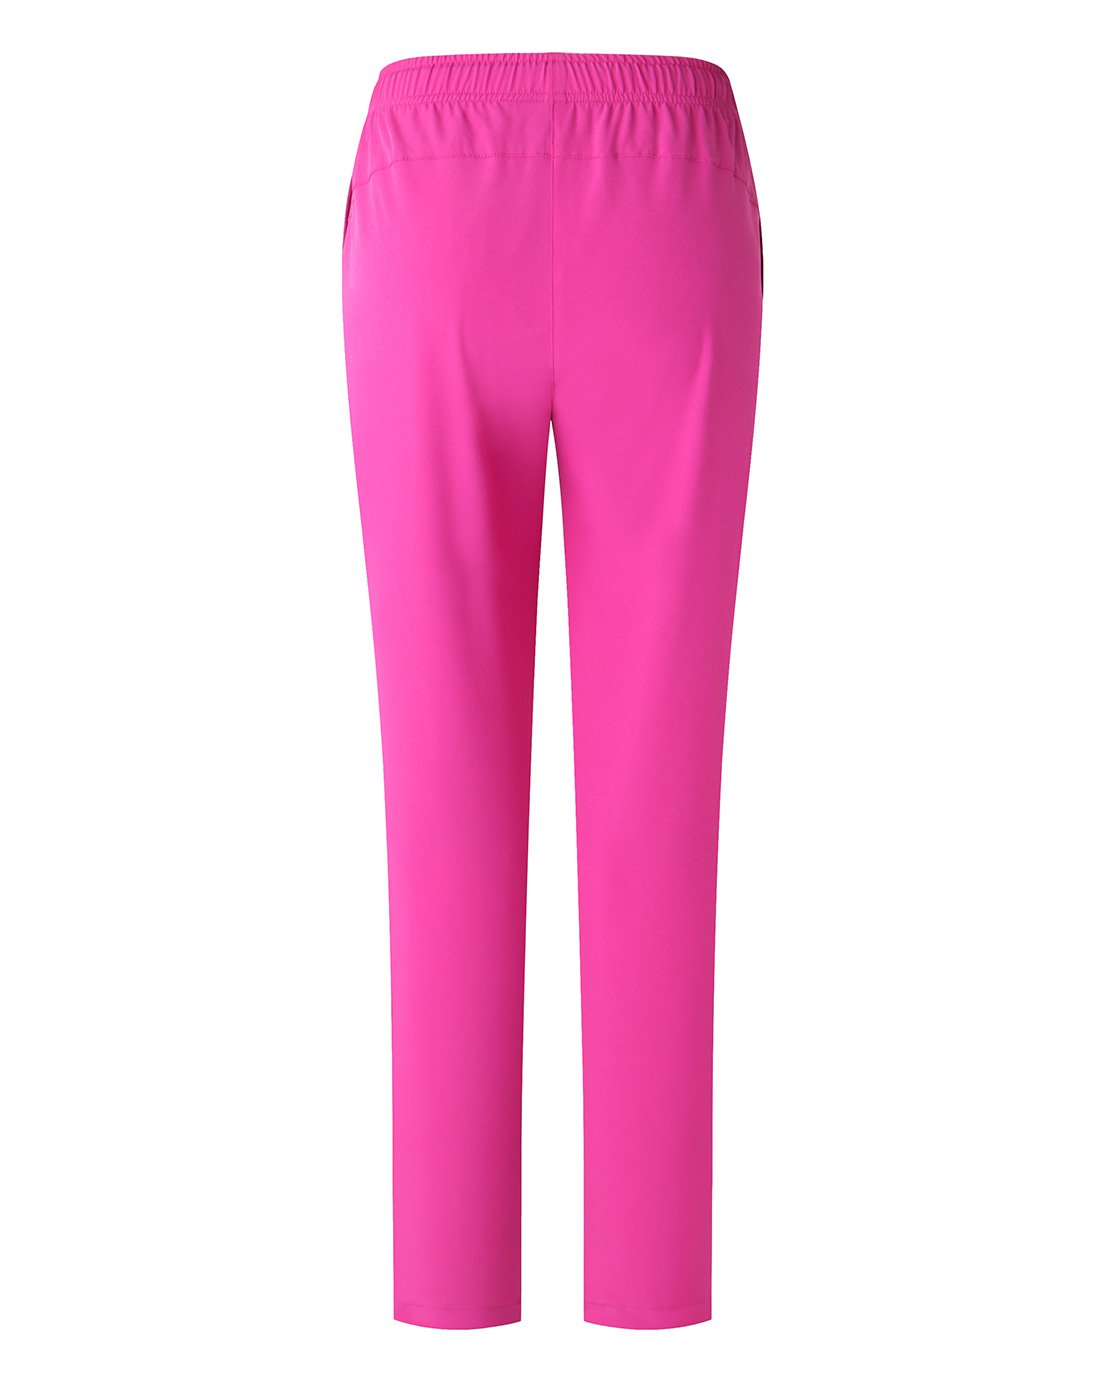 Stretch Slacks For Women's Casual Sport